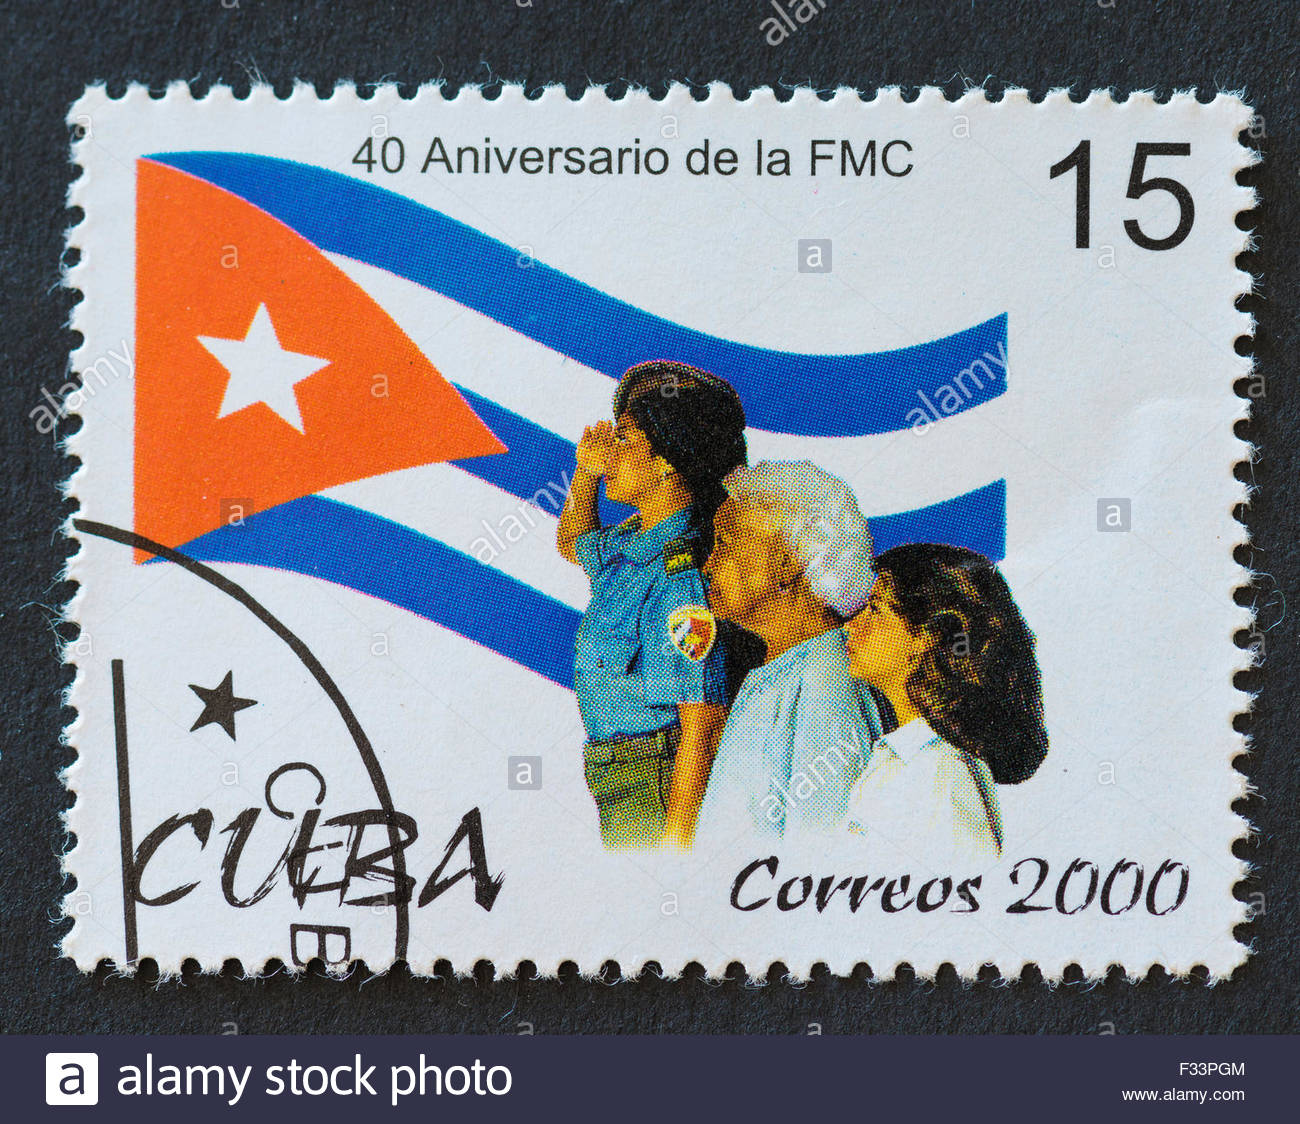 Cuban 2000 stamp commemorating the 40th anniversary of 'Federacion de Mujeres Cubanas' or 'The Federation - Stock Image